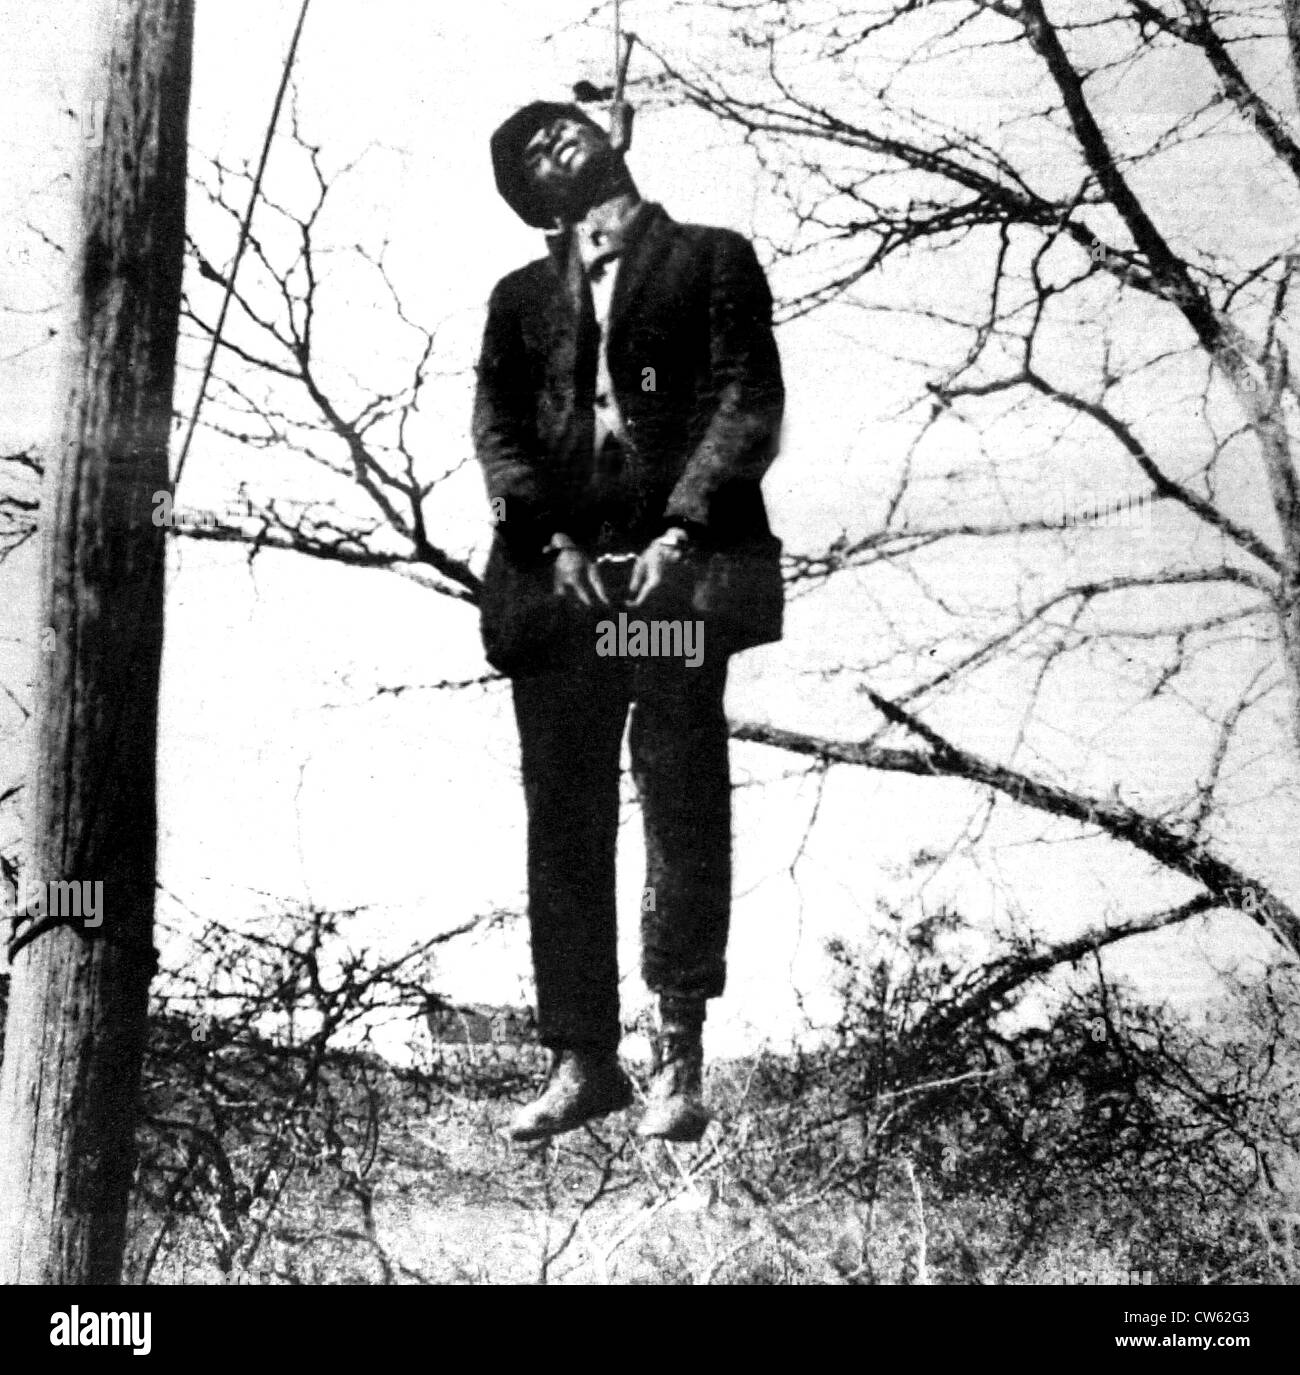 Lynching scene in Texas, 1930. A black man, accused of having attacked a white woman, is hanged immediately. - Stock Image